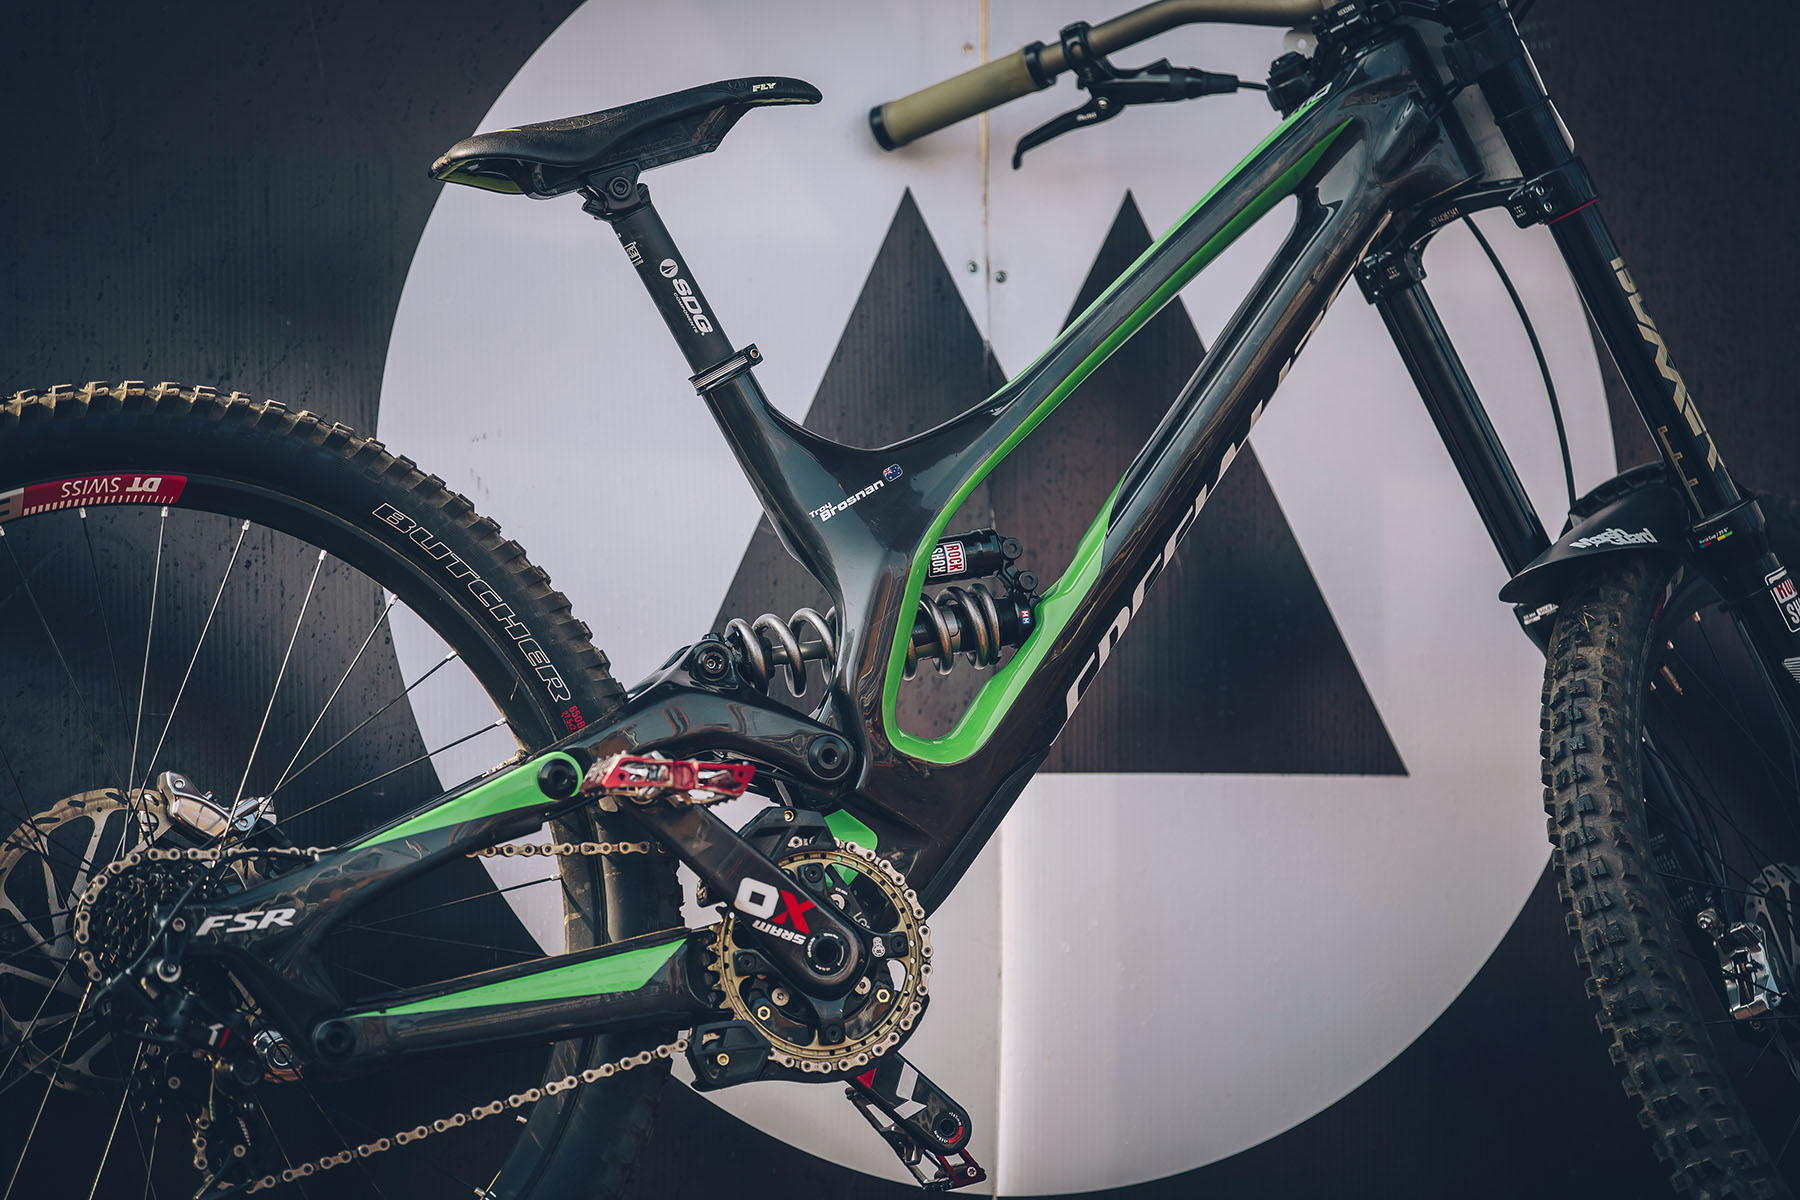 The new bike served the Specialized team well this round, but with feedback from the riders they have a week now to make some tweaks and fine tune her for Windham next week. As a team you always want to see its maiden race be a win but Im sure it wont take long for one of them to make it happen.